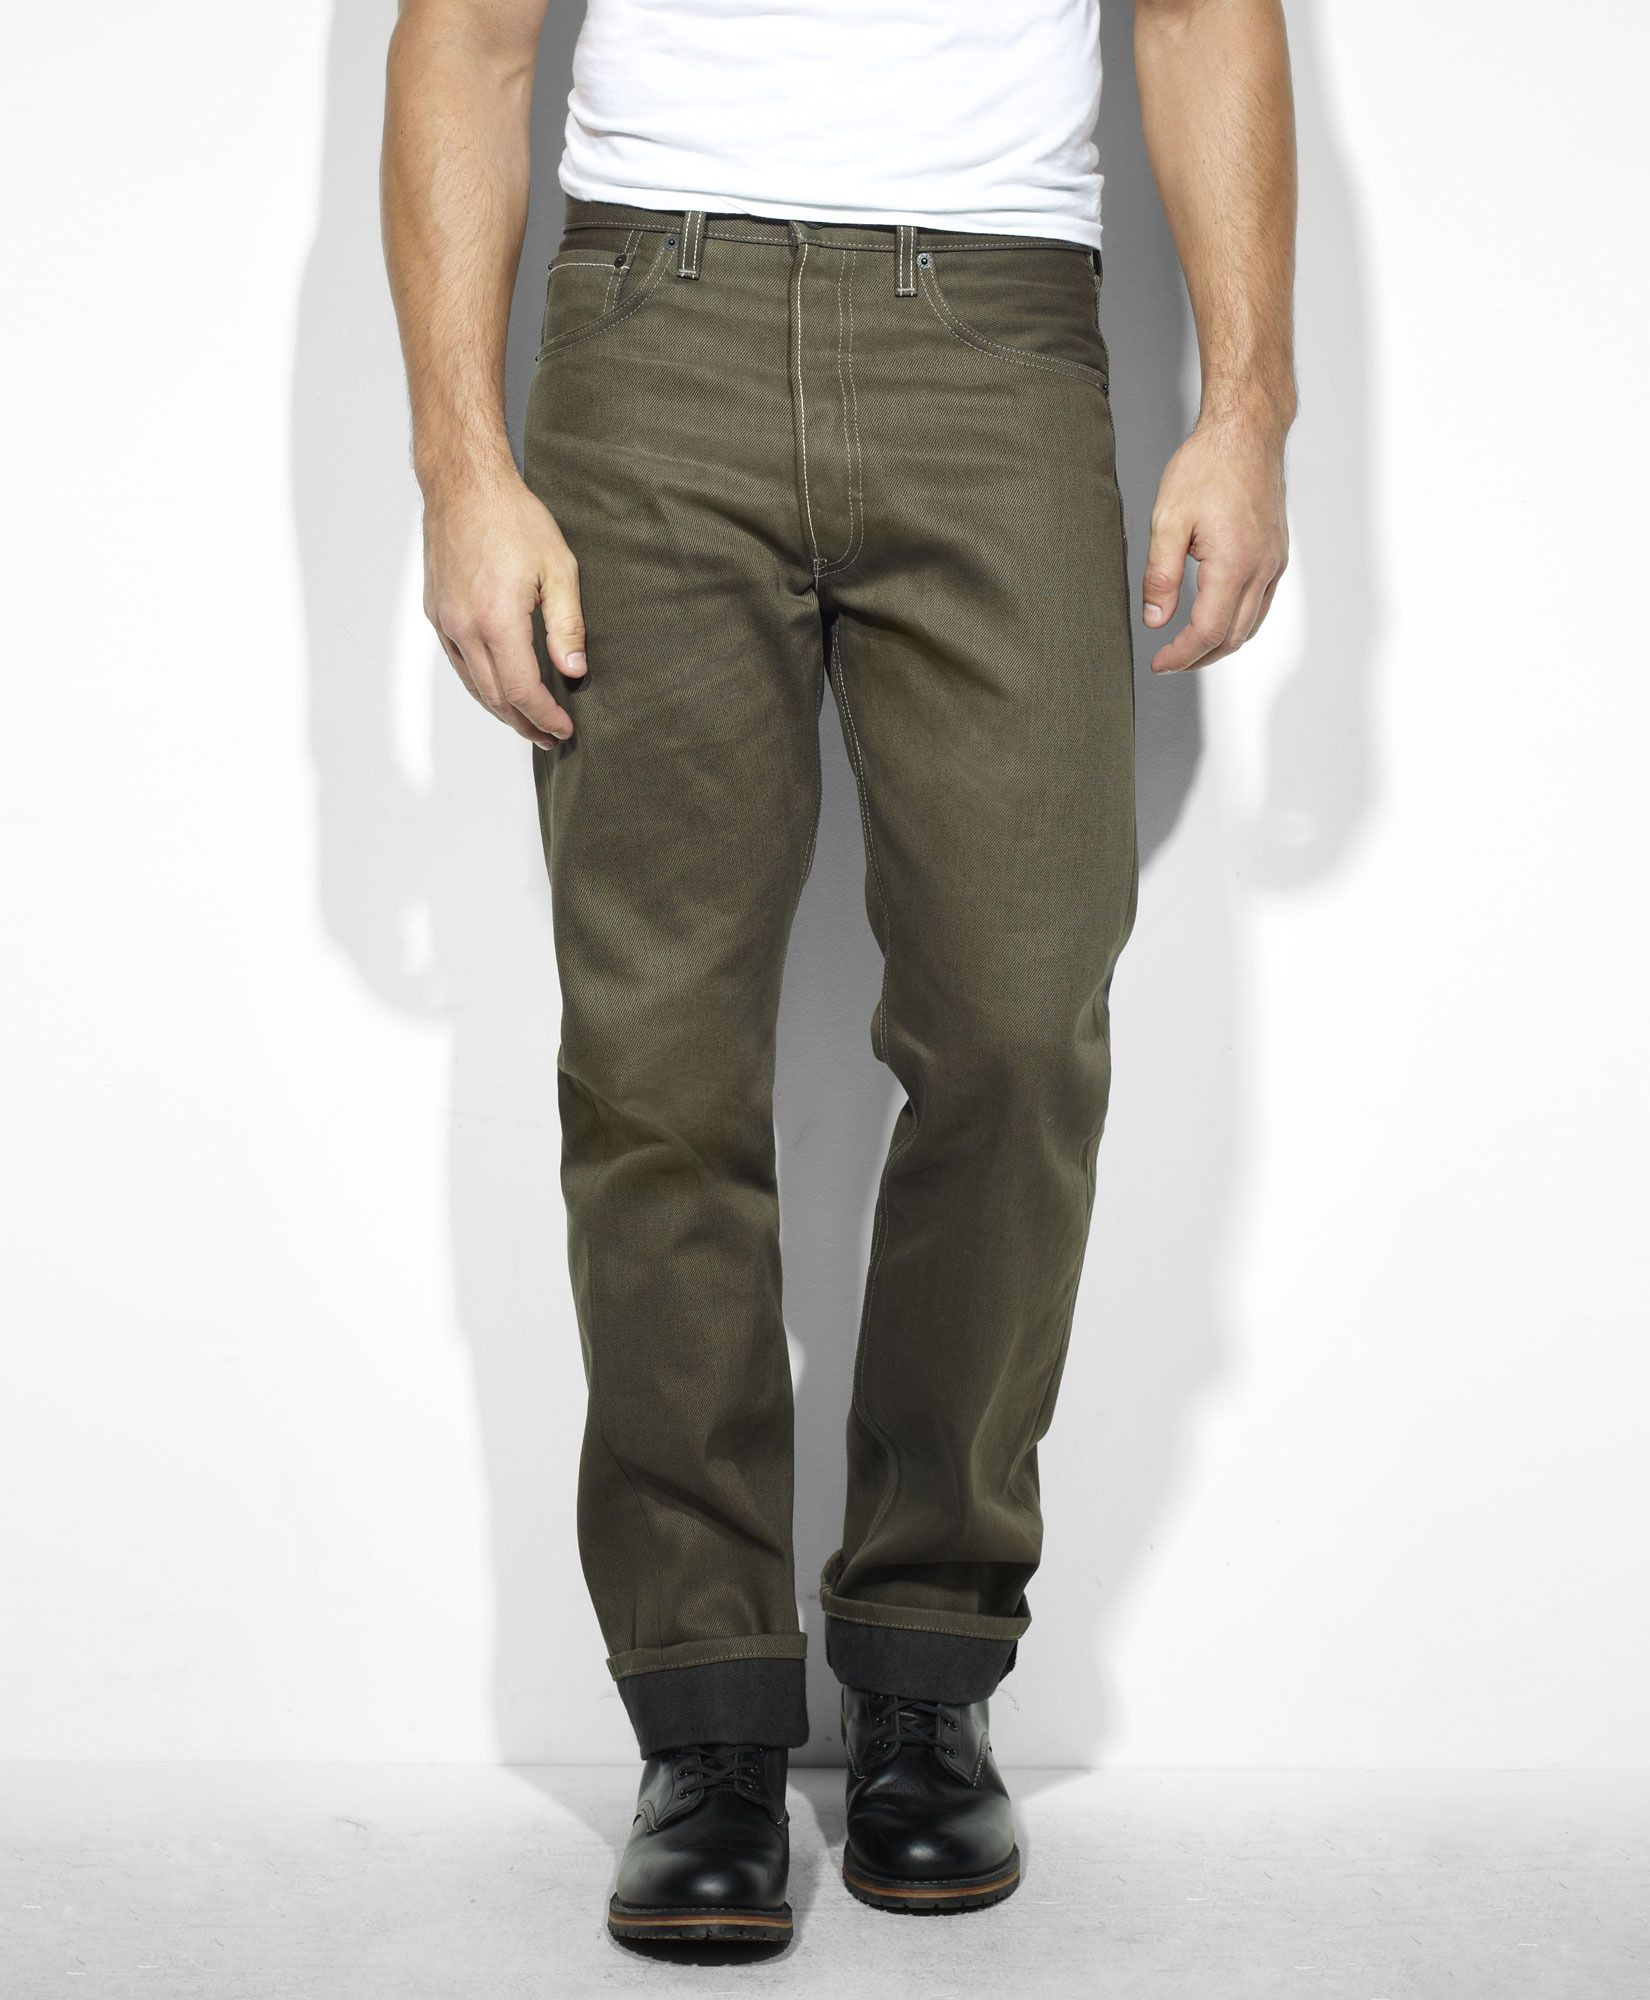 56f6e7271d4 Levis 501 Dark Green finish Levis Jeans, Jeans Fit, Jeans Pants, Khaki Pants